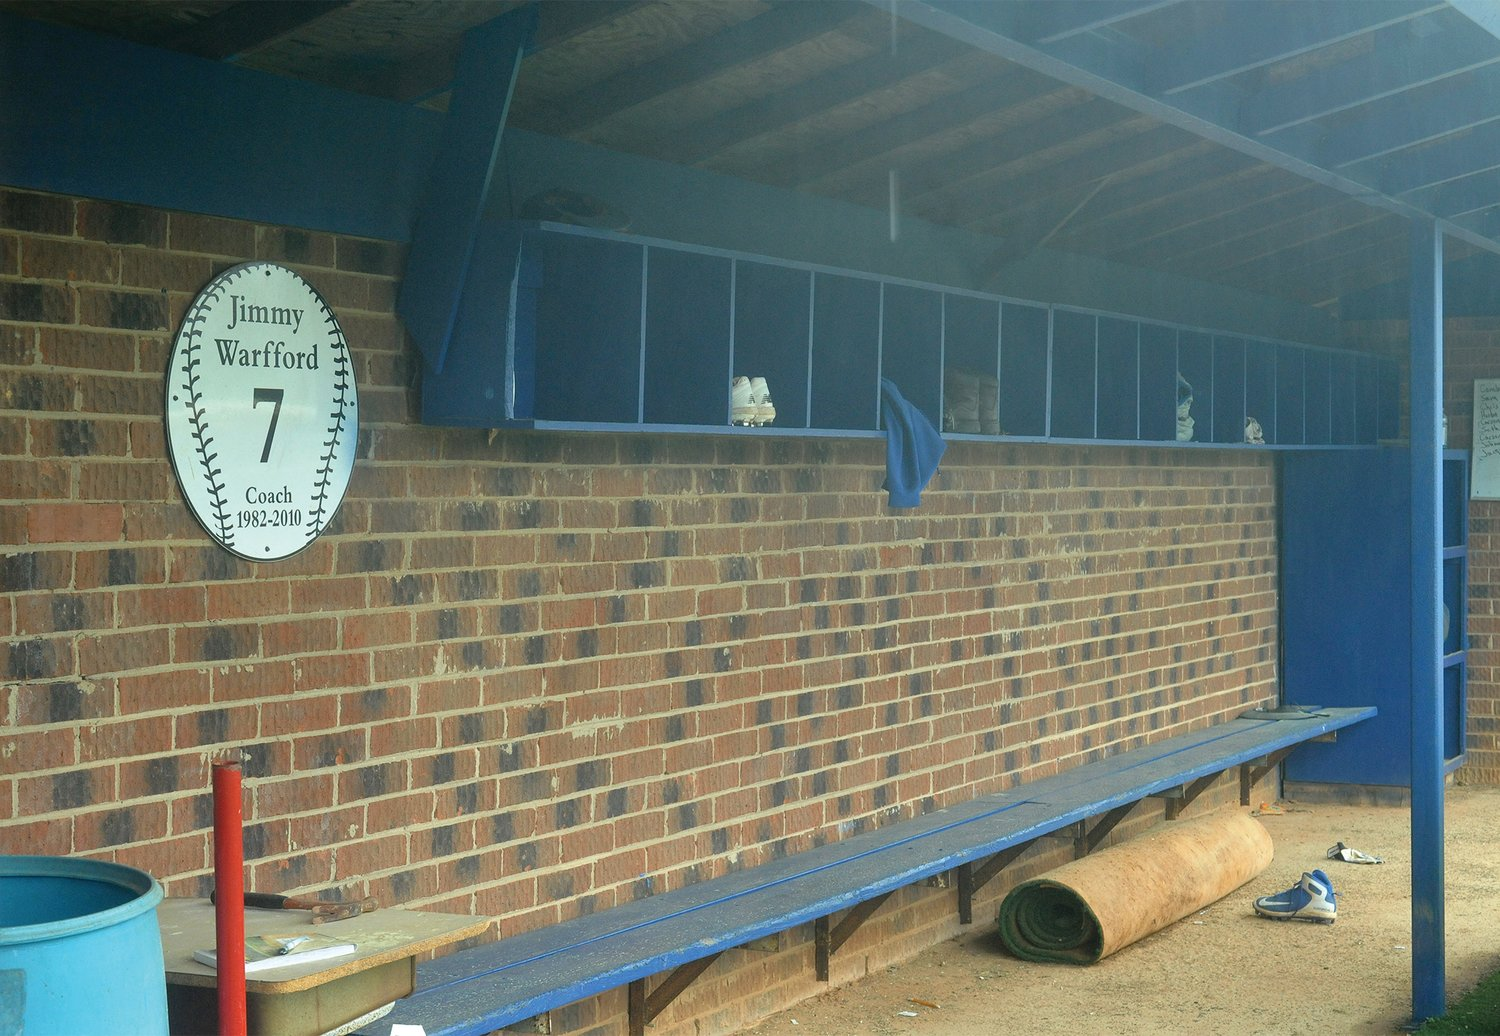 The evidence of a too-short season remains in the home team's dugout at Jordan-Matthews High School. Cleats, boots and jackets were left behind after the abrupt halt to all high school sports in the state after a season that lasted for only a few games.